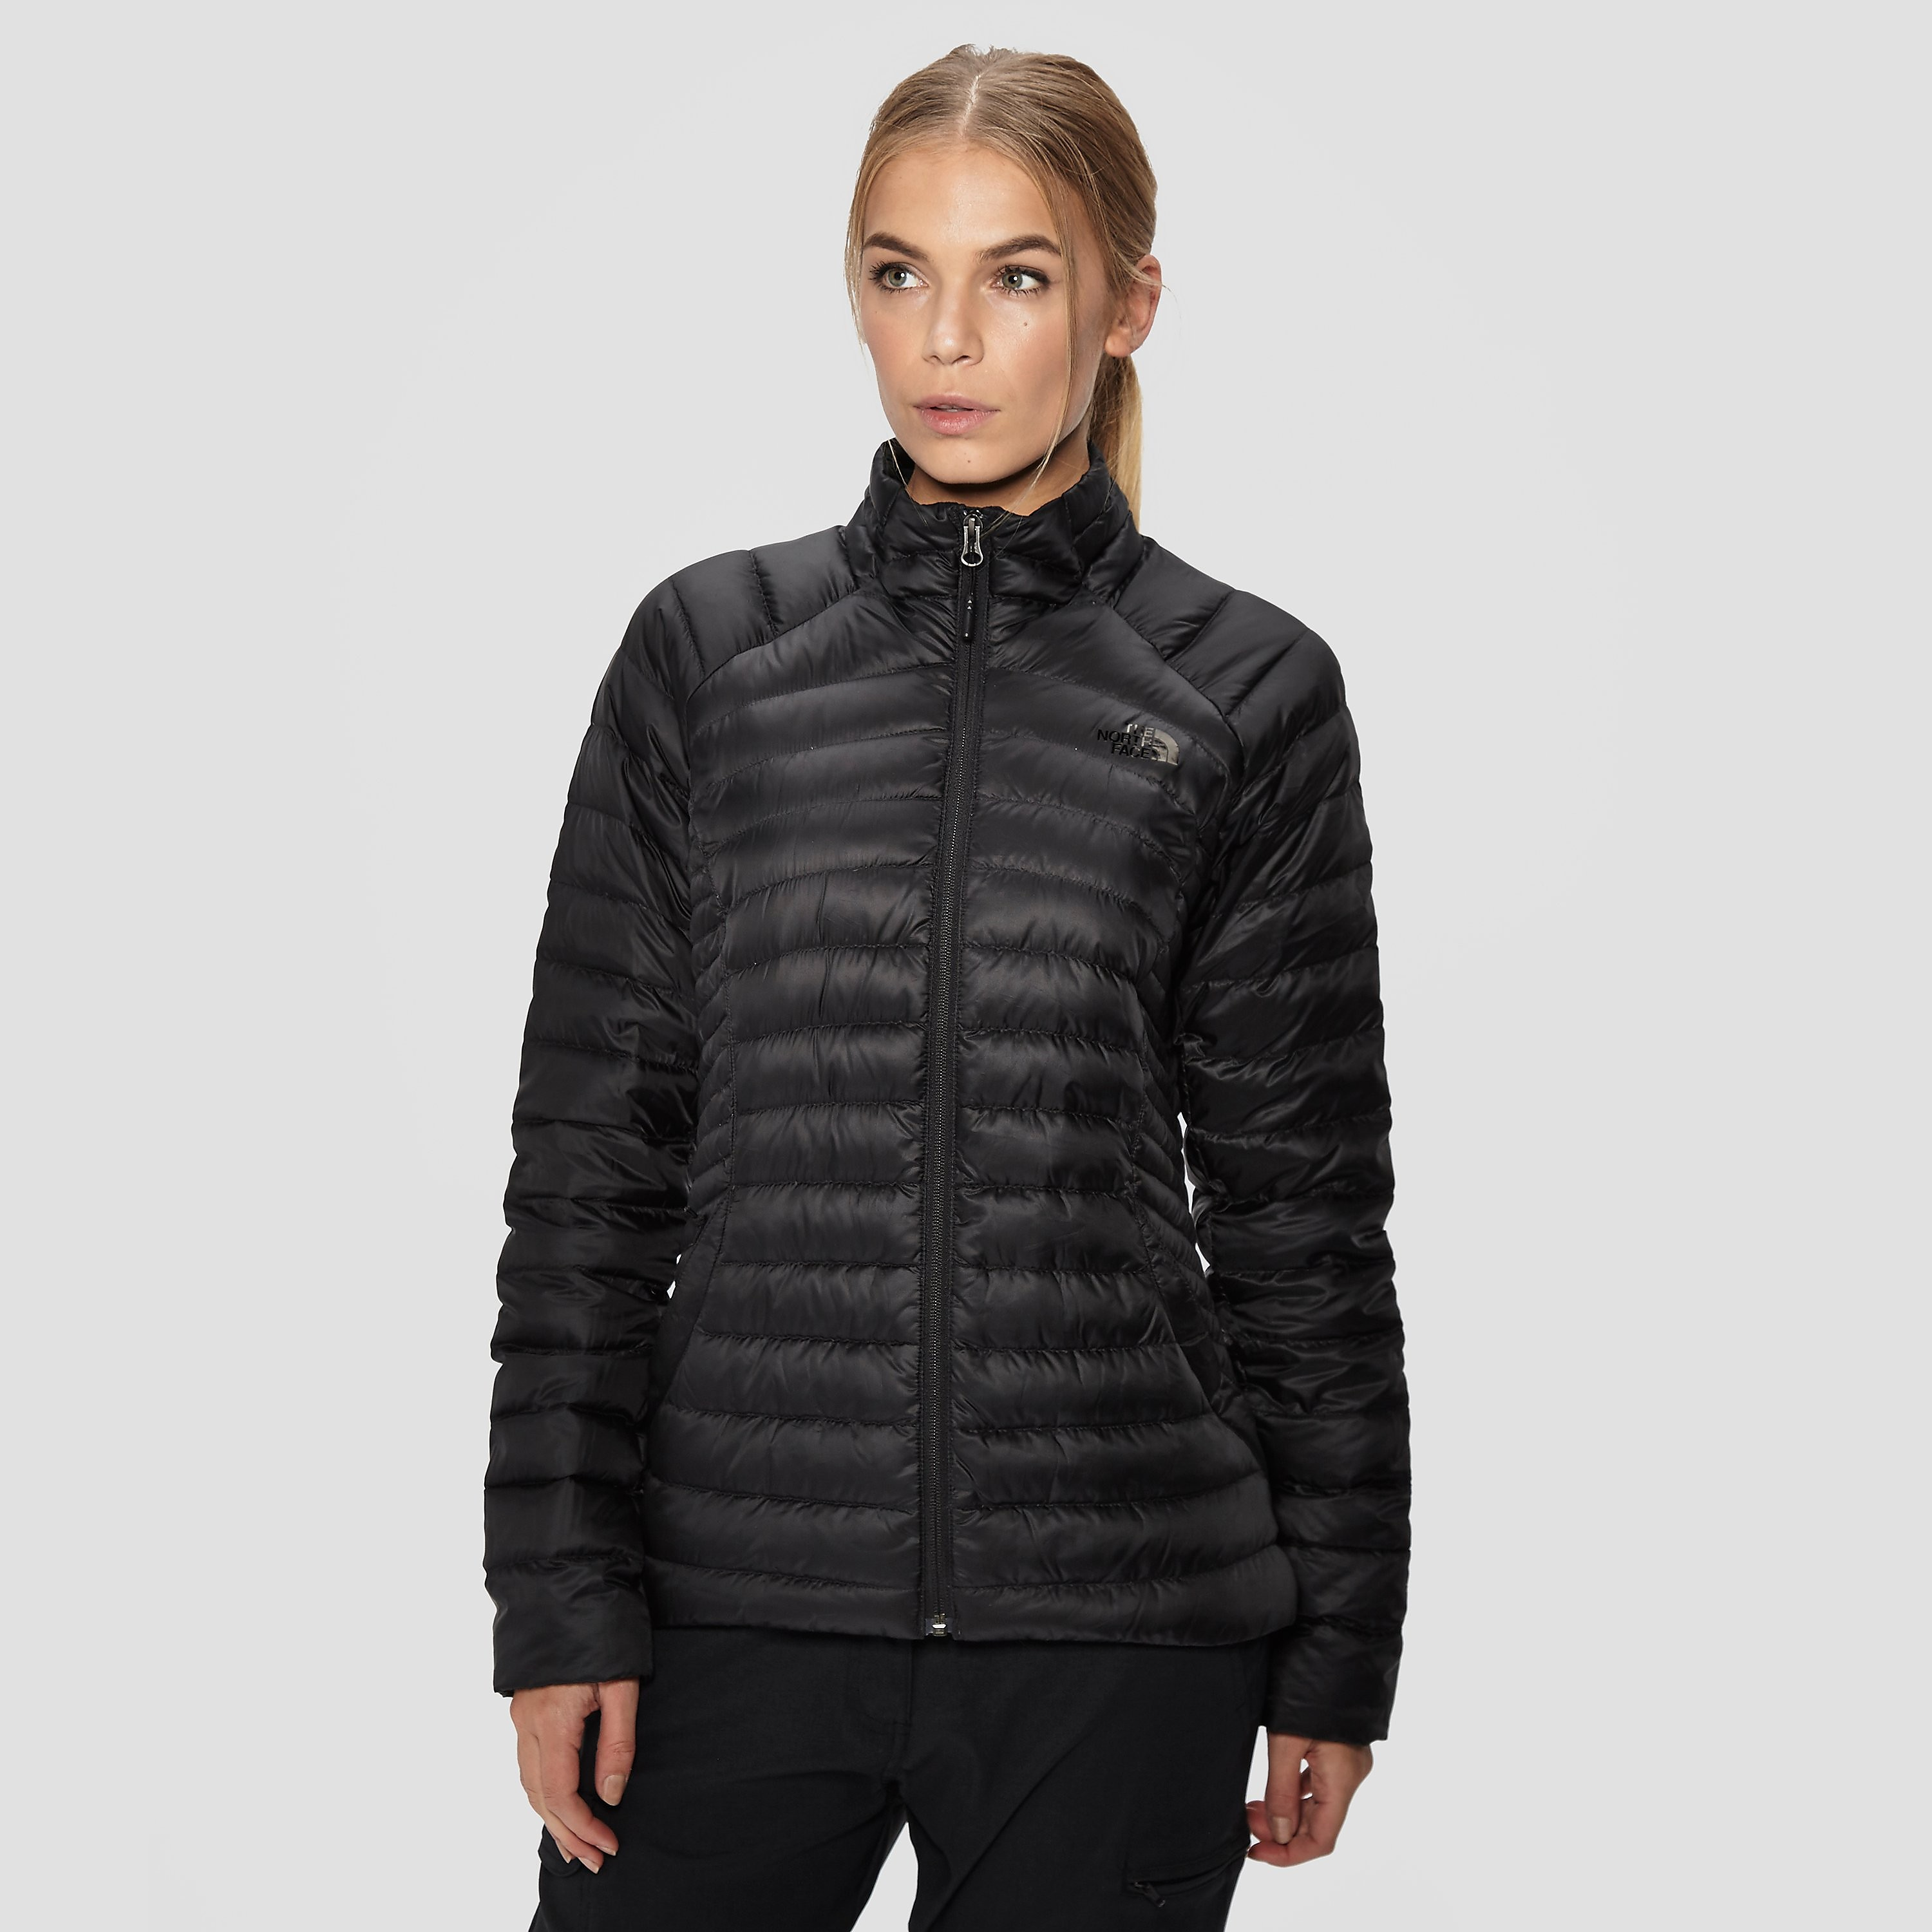 674a9a8f2 The North Face Tonnerro Full Zip jacket – Women's | Jacket Compare ...